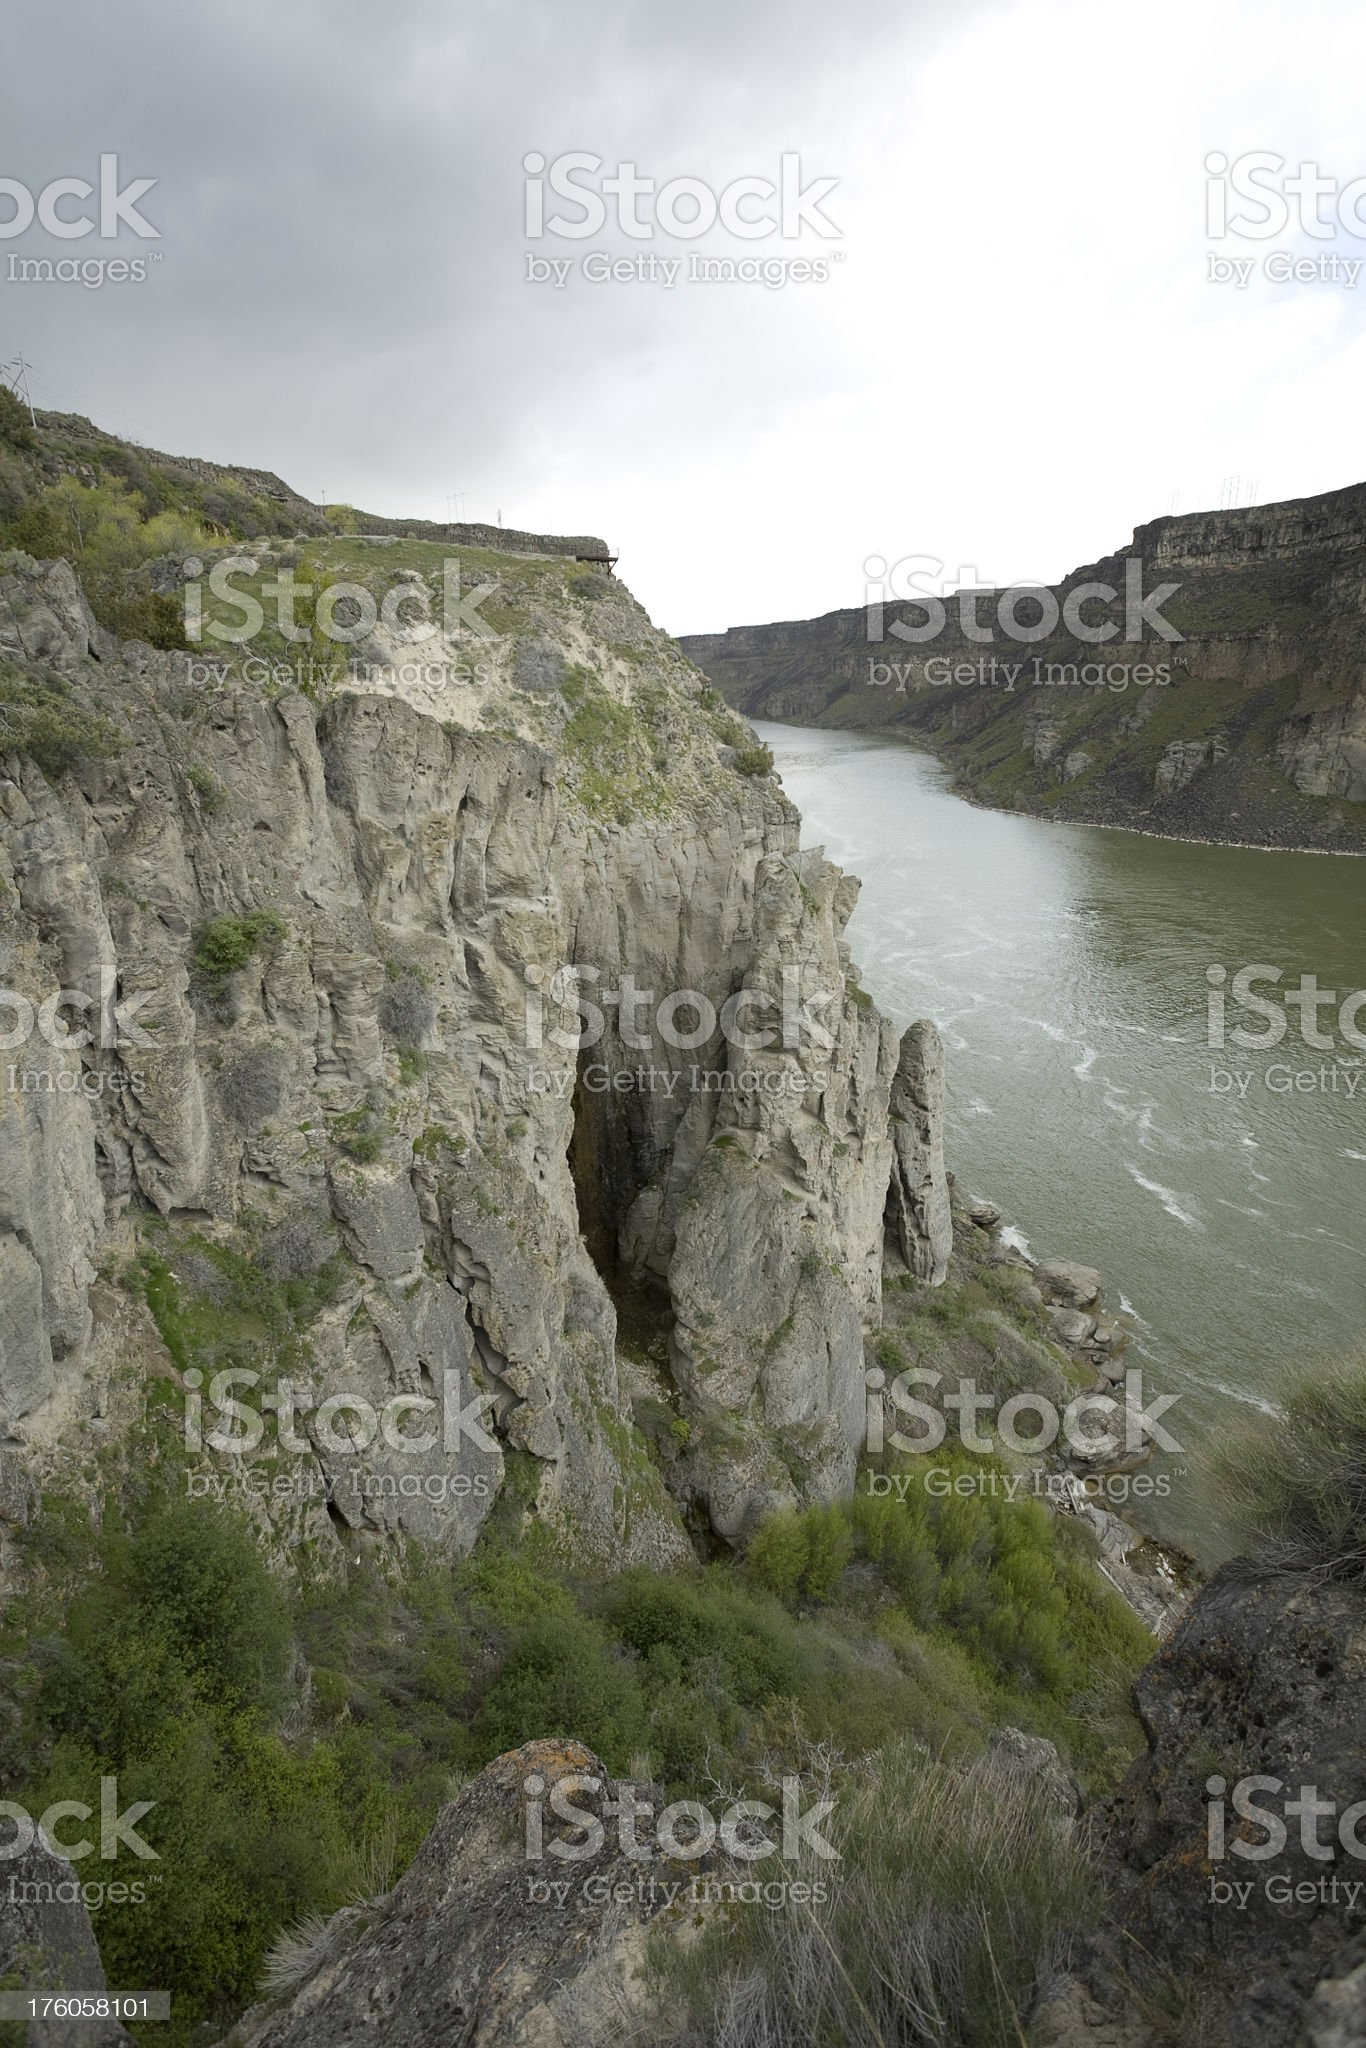 Cliffs on the Snake River. royalty-free stock photo